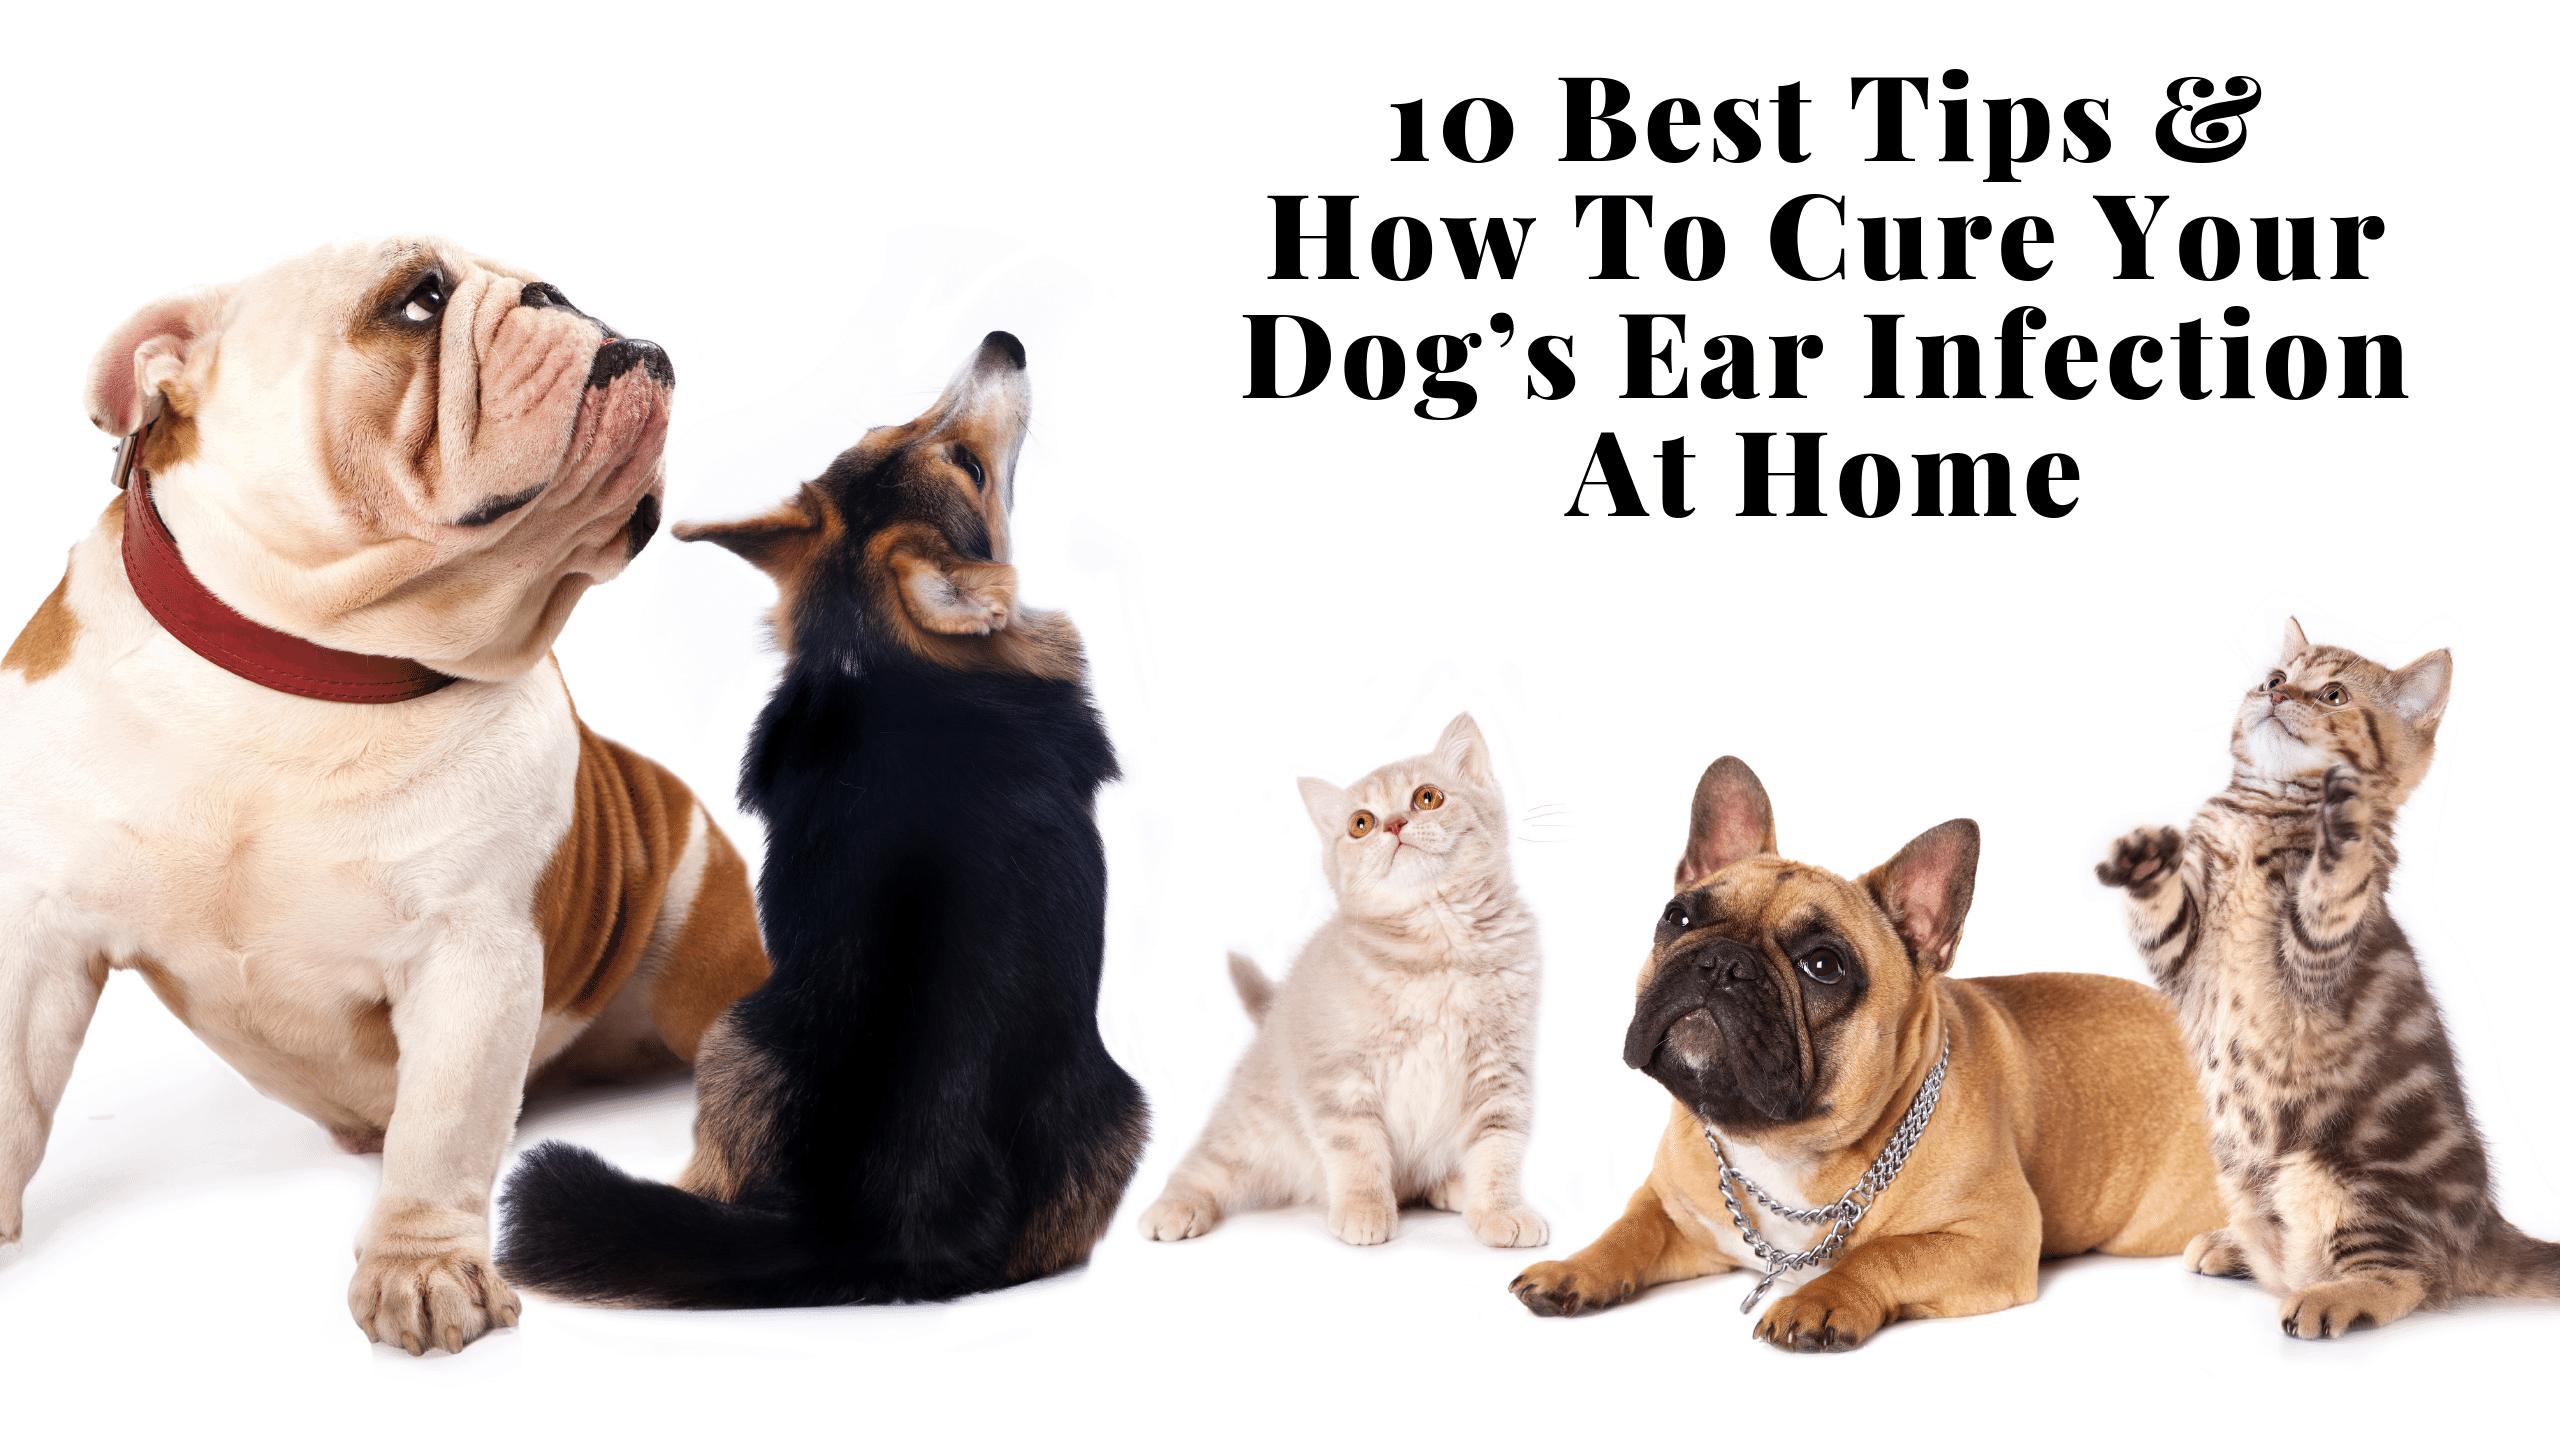 How Can I Cure My Dog's Ear Infection At Home?